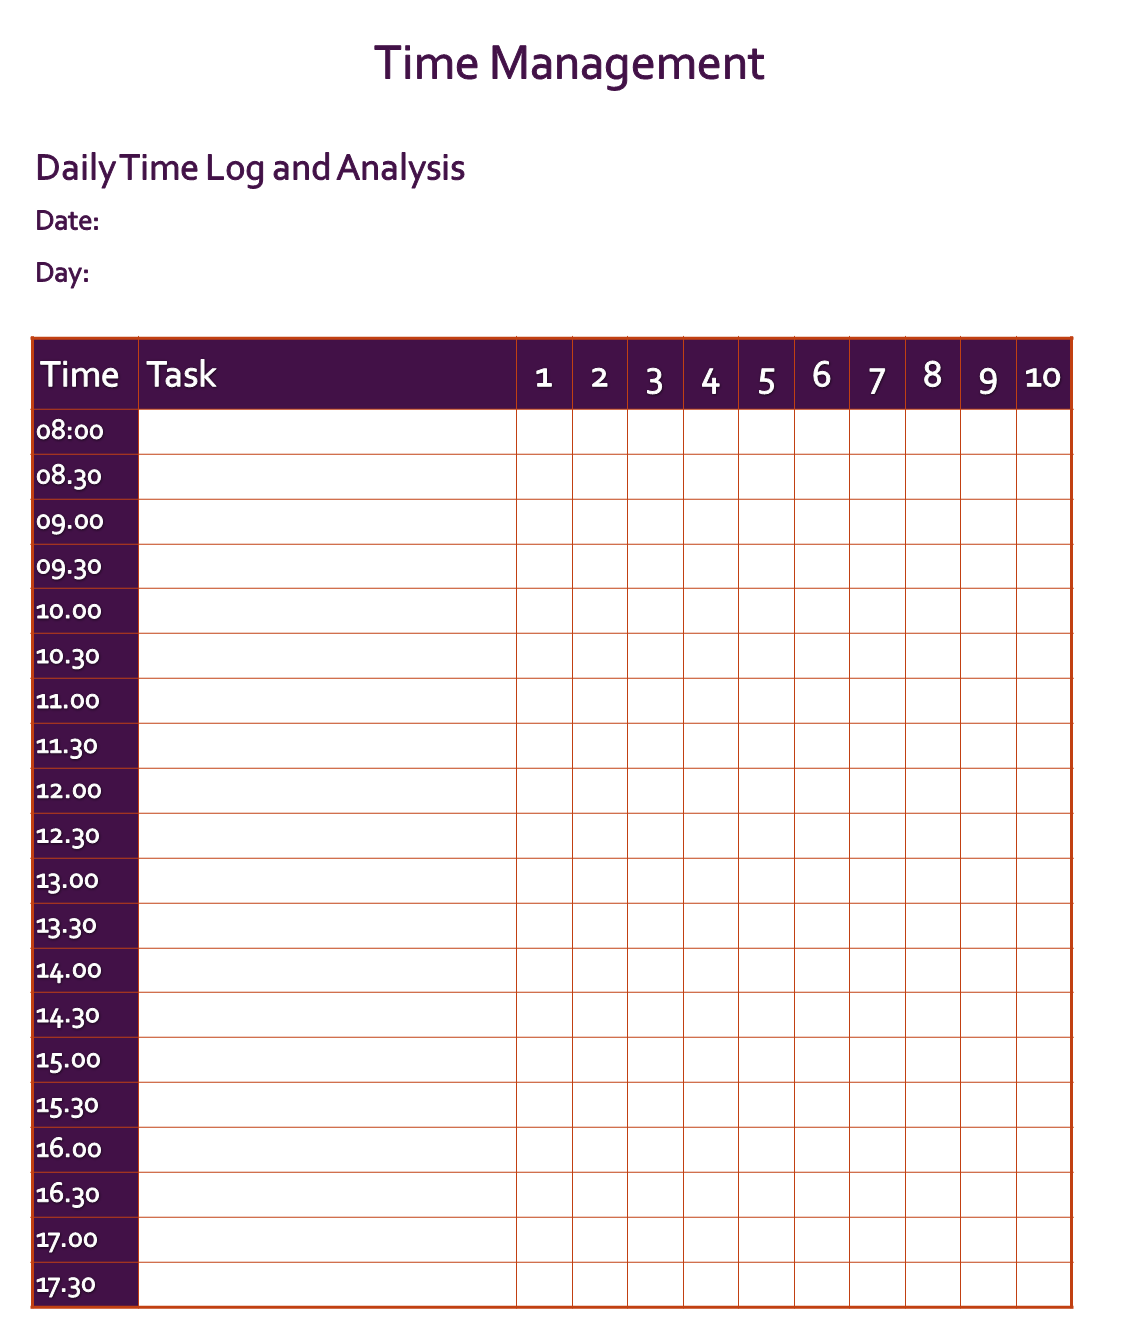 Daily Time Log